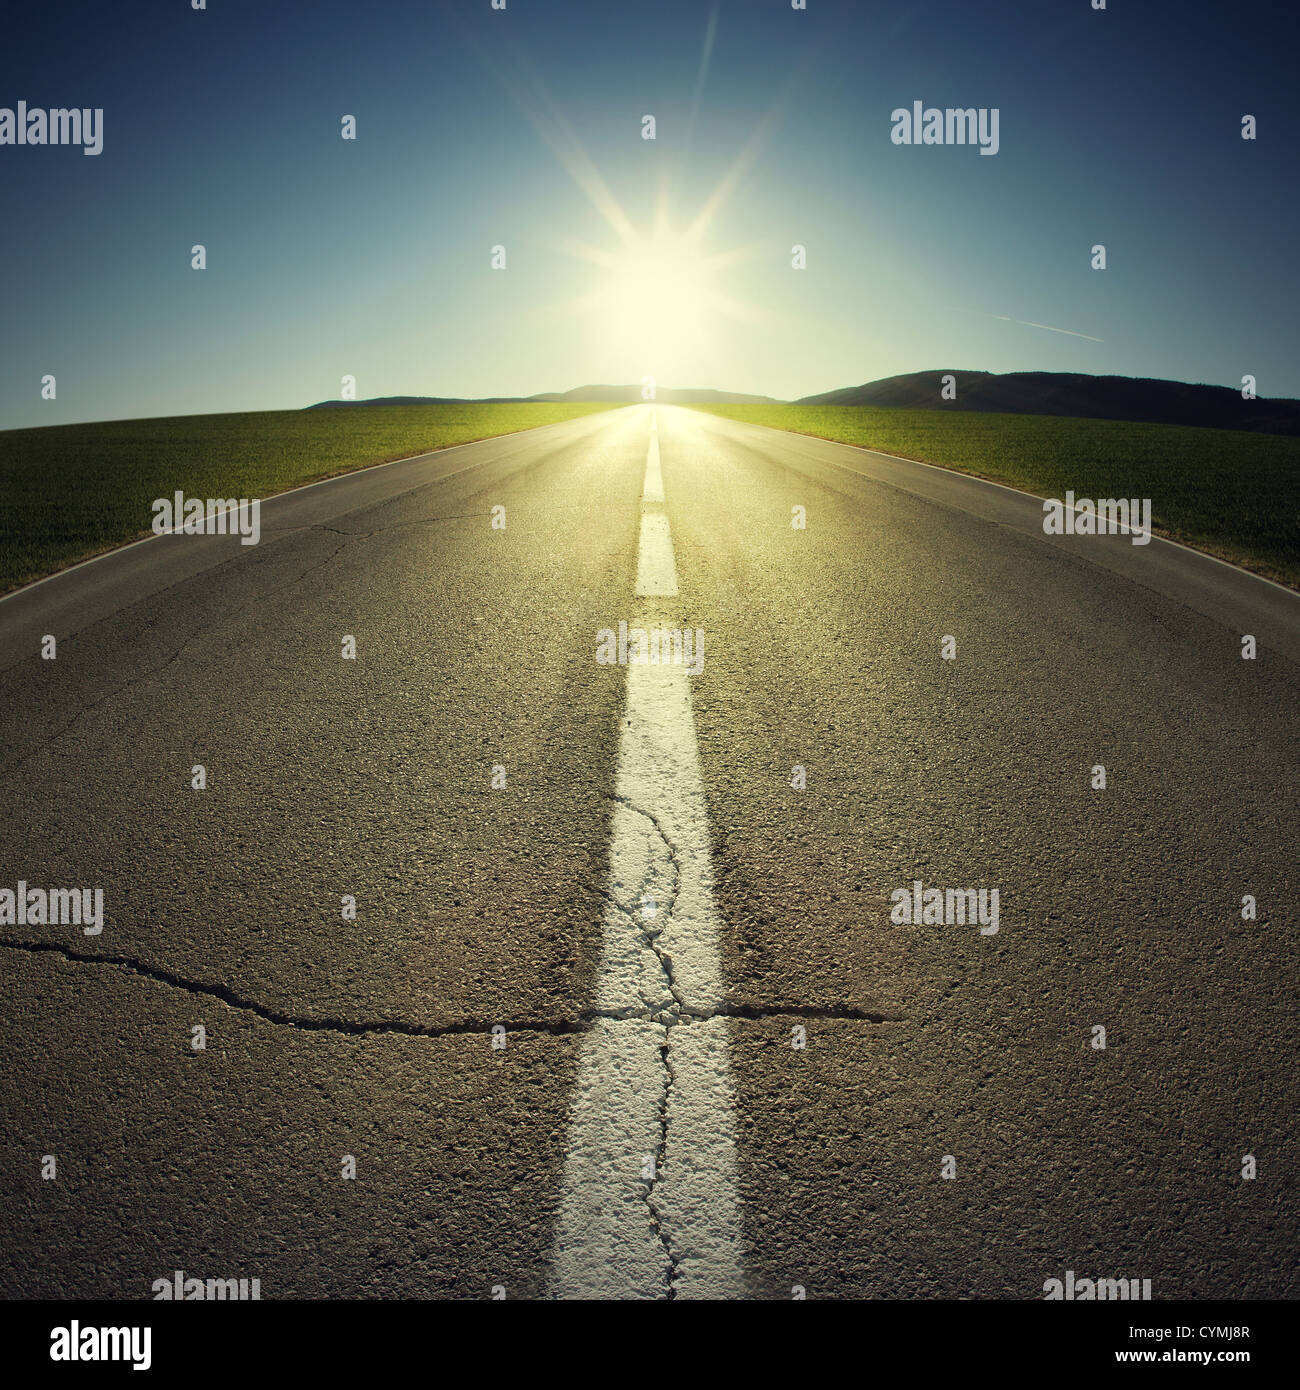 asphalt of country road in backlight - Stock Image